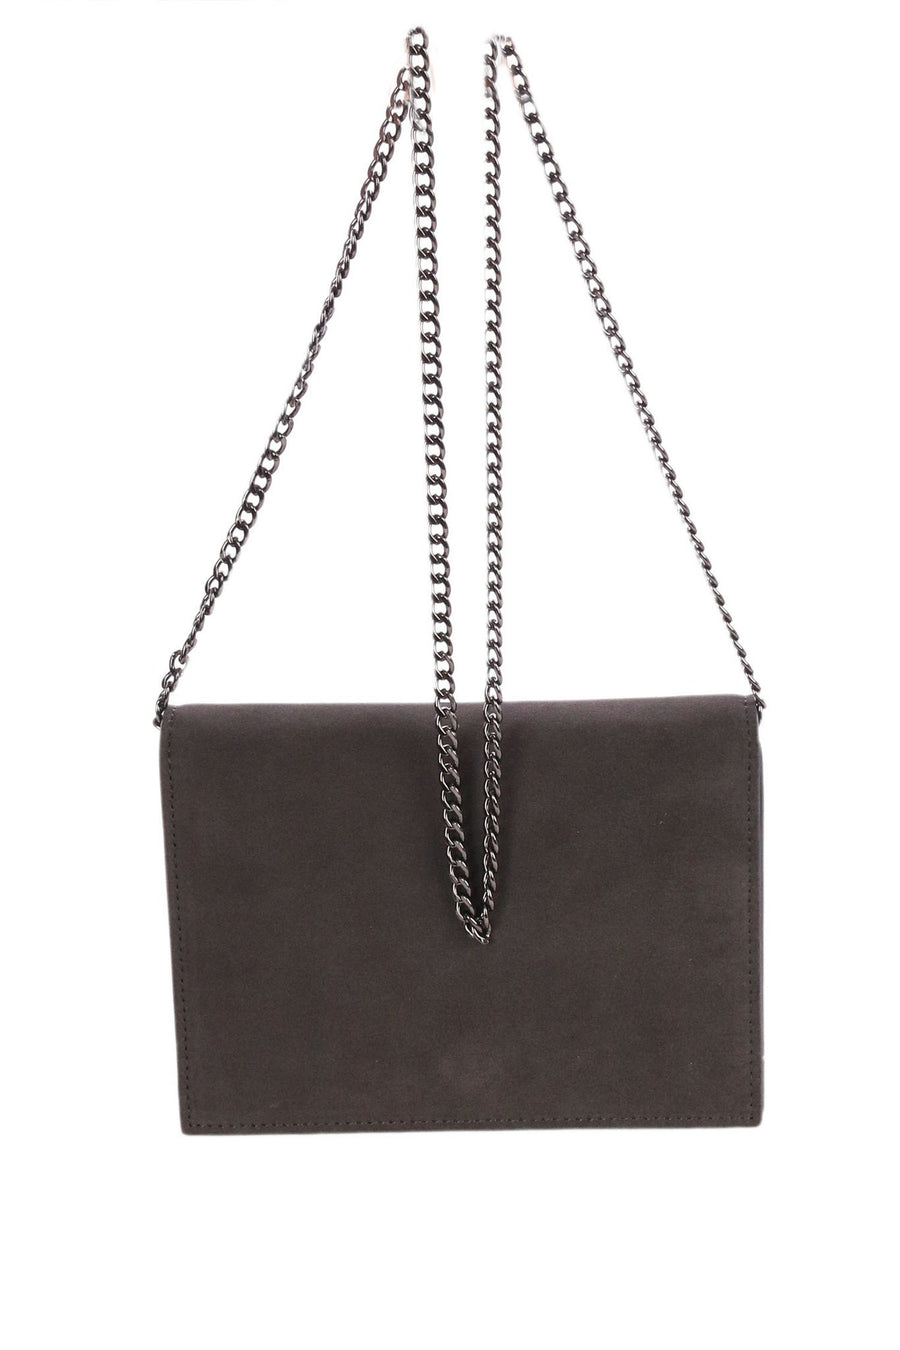 Dark Grey Suede Leather Clutch by Peter Lang Frockaholics.com